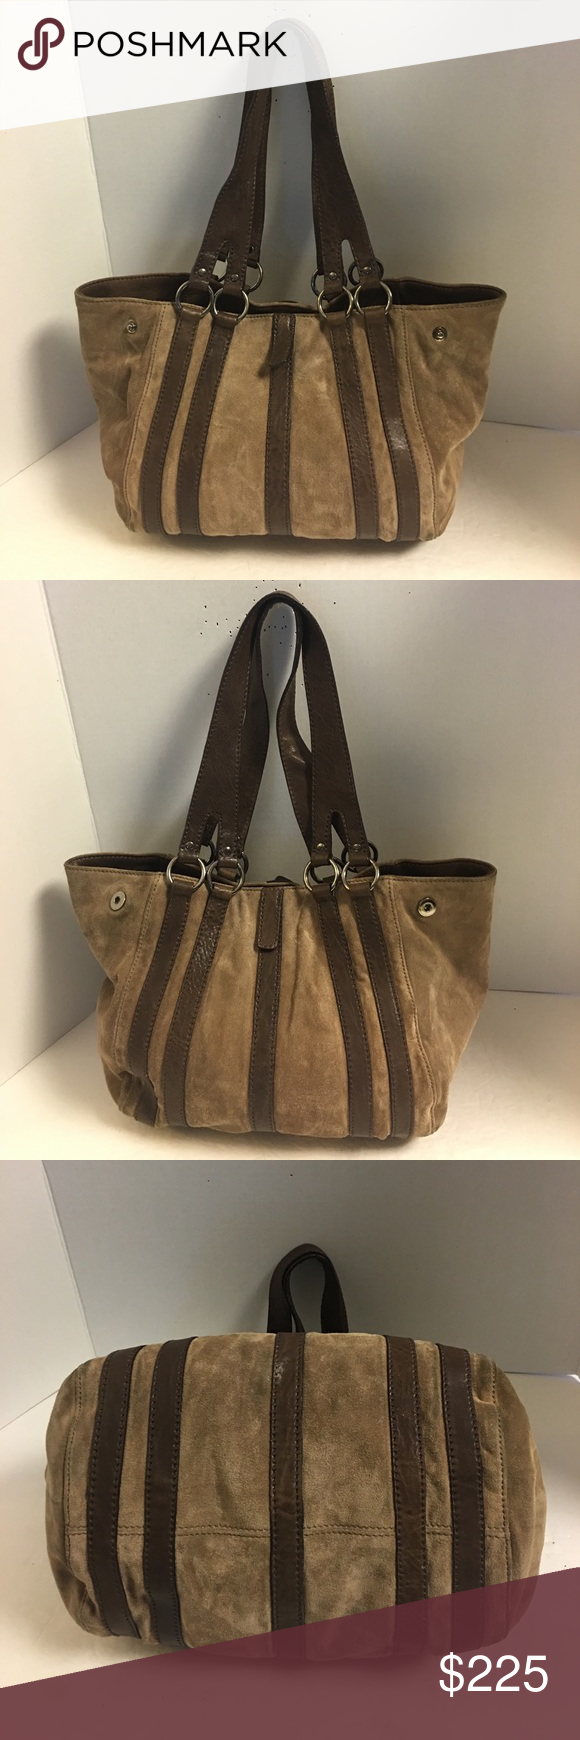 Miu miu Brown suede and leather tote shoulder bag Nice gently used miu miu  Prada chocolate brown suede shoulder bag with brown leather trim and straps. 7f8ad5f9c6a7d